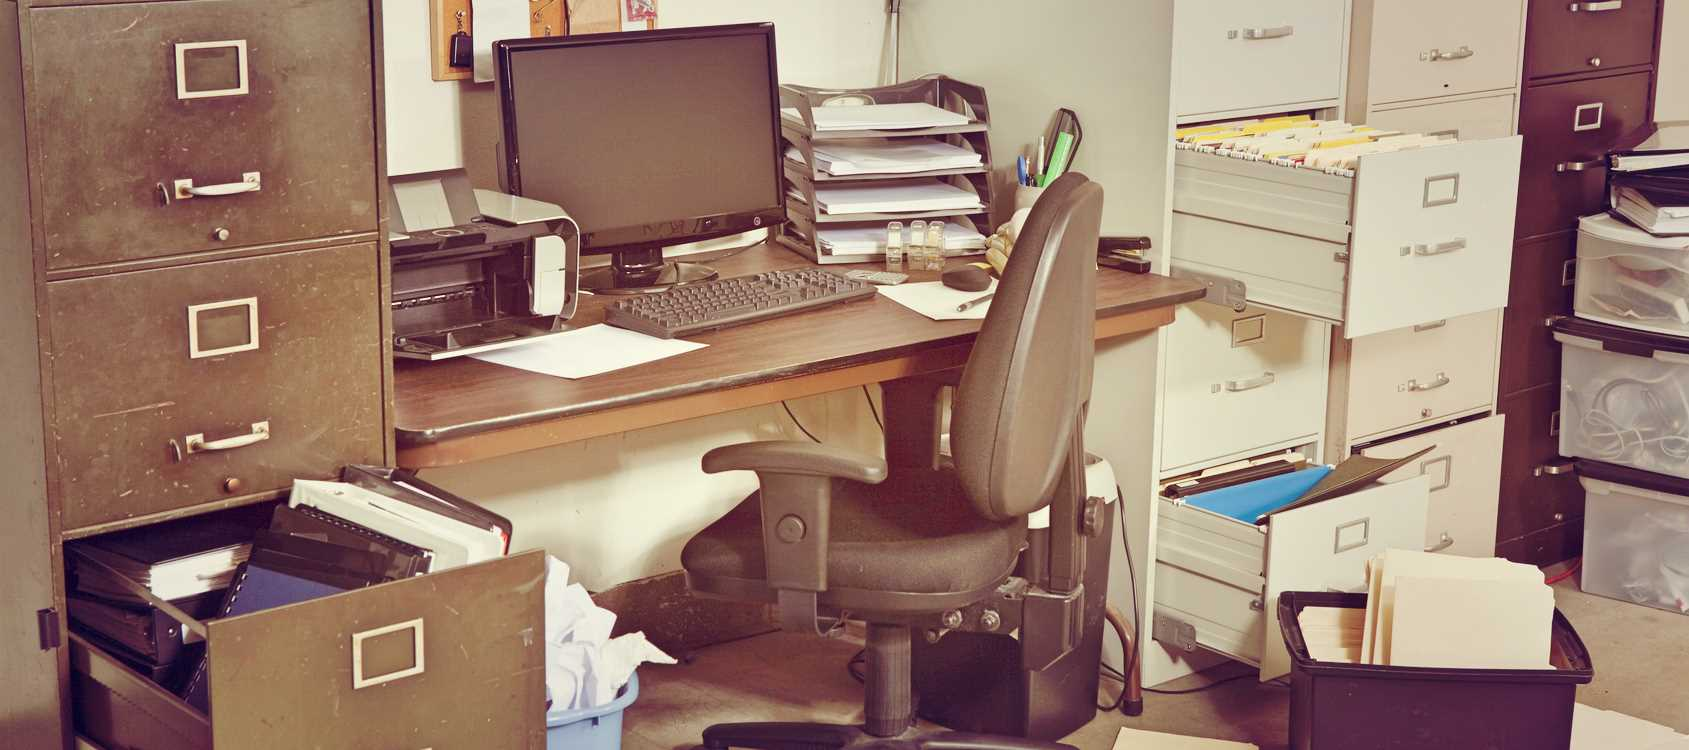 Office Clean Out-Temecula Dumpster Rental & Junk Removal Services-We Offer Residential and Commercial Dumpster Removal Services, Portable Toilet Services, Dumpster Rentals, Bulk Trash, Demolition Removal, Junk Hauling, Rubbish Removal, Waste Containers, Debris Removal, 20 & 30 Yard Container Rentals, and much more!